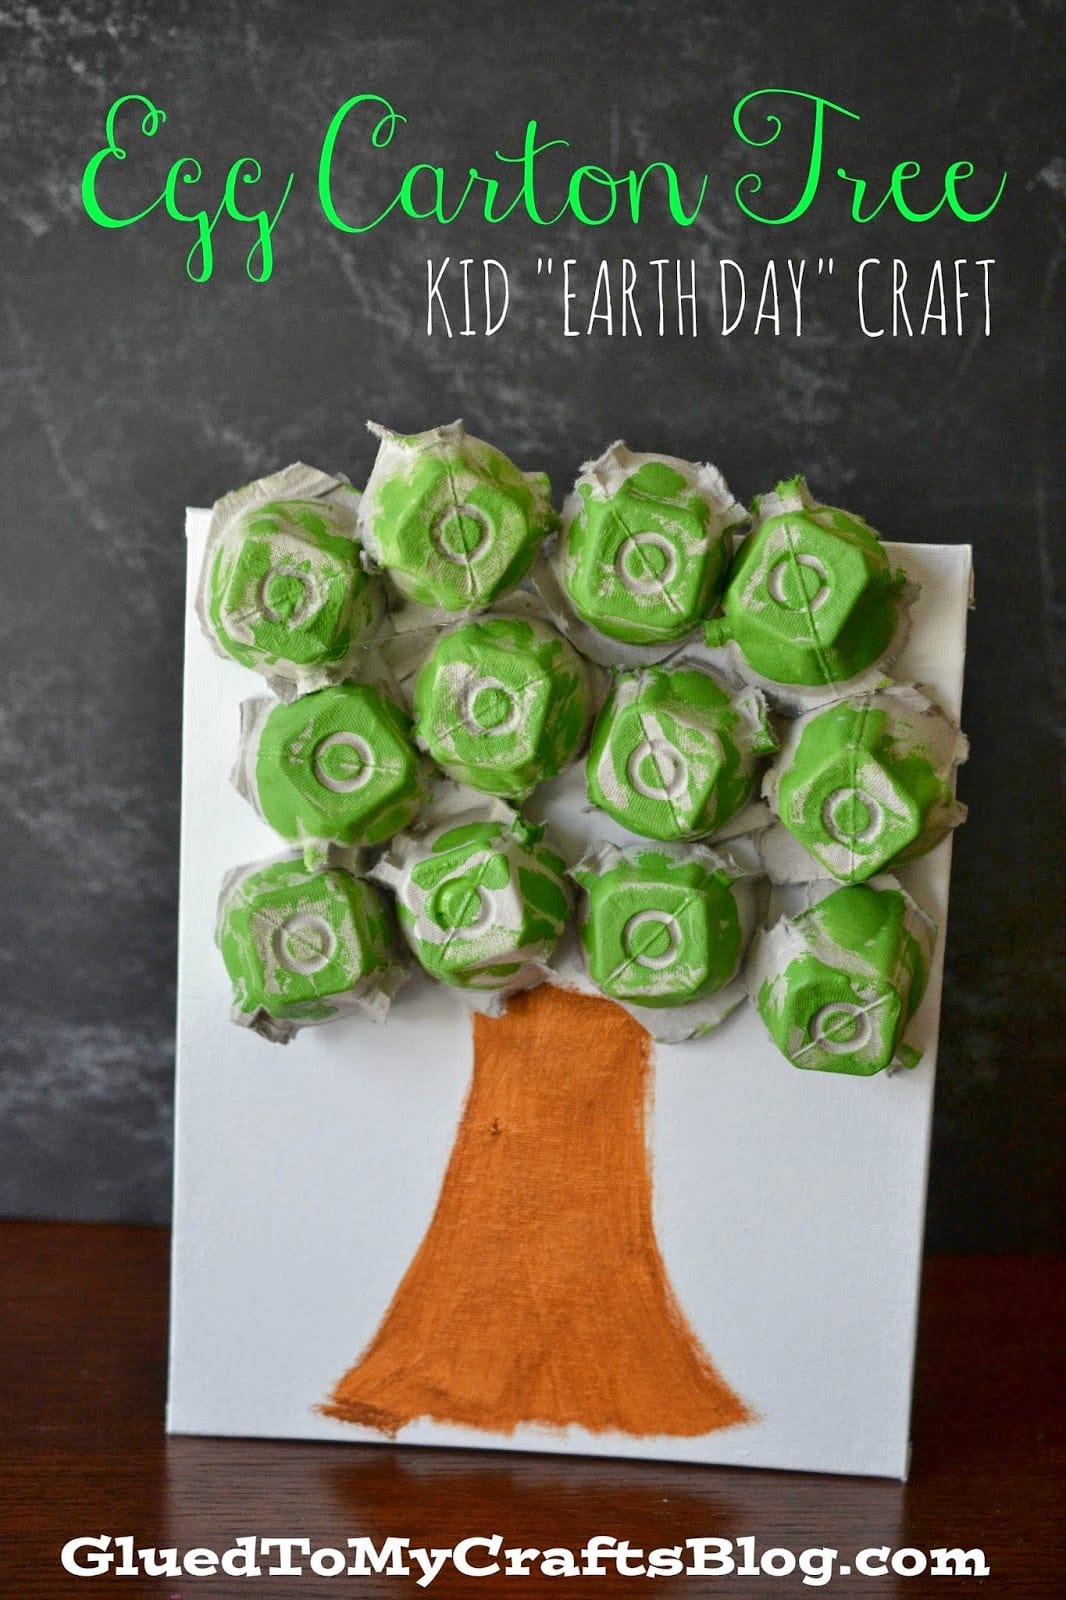 30 Earth Day Crafts With Recycled Materials